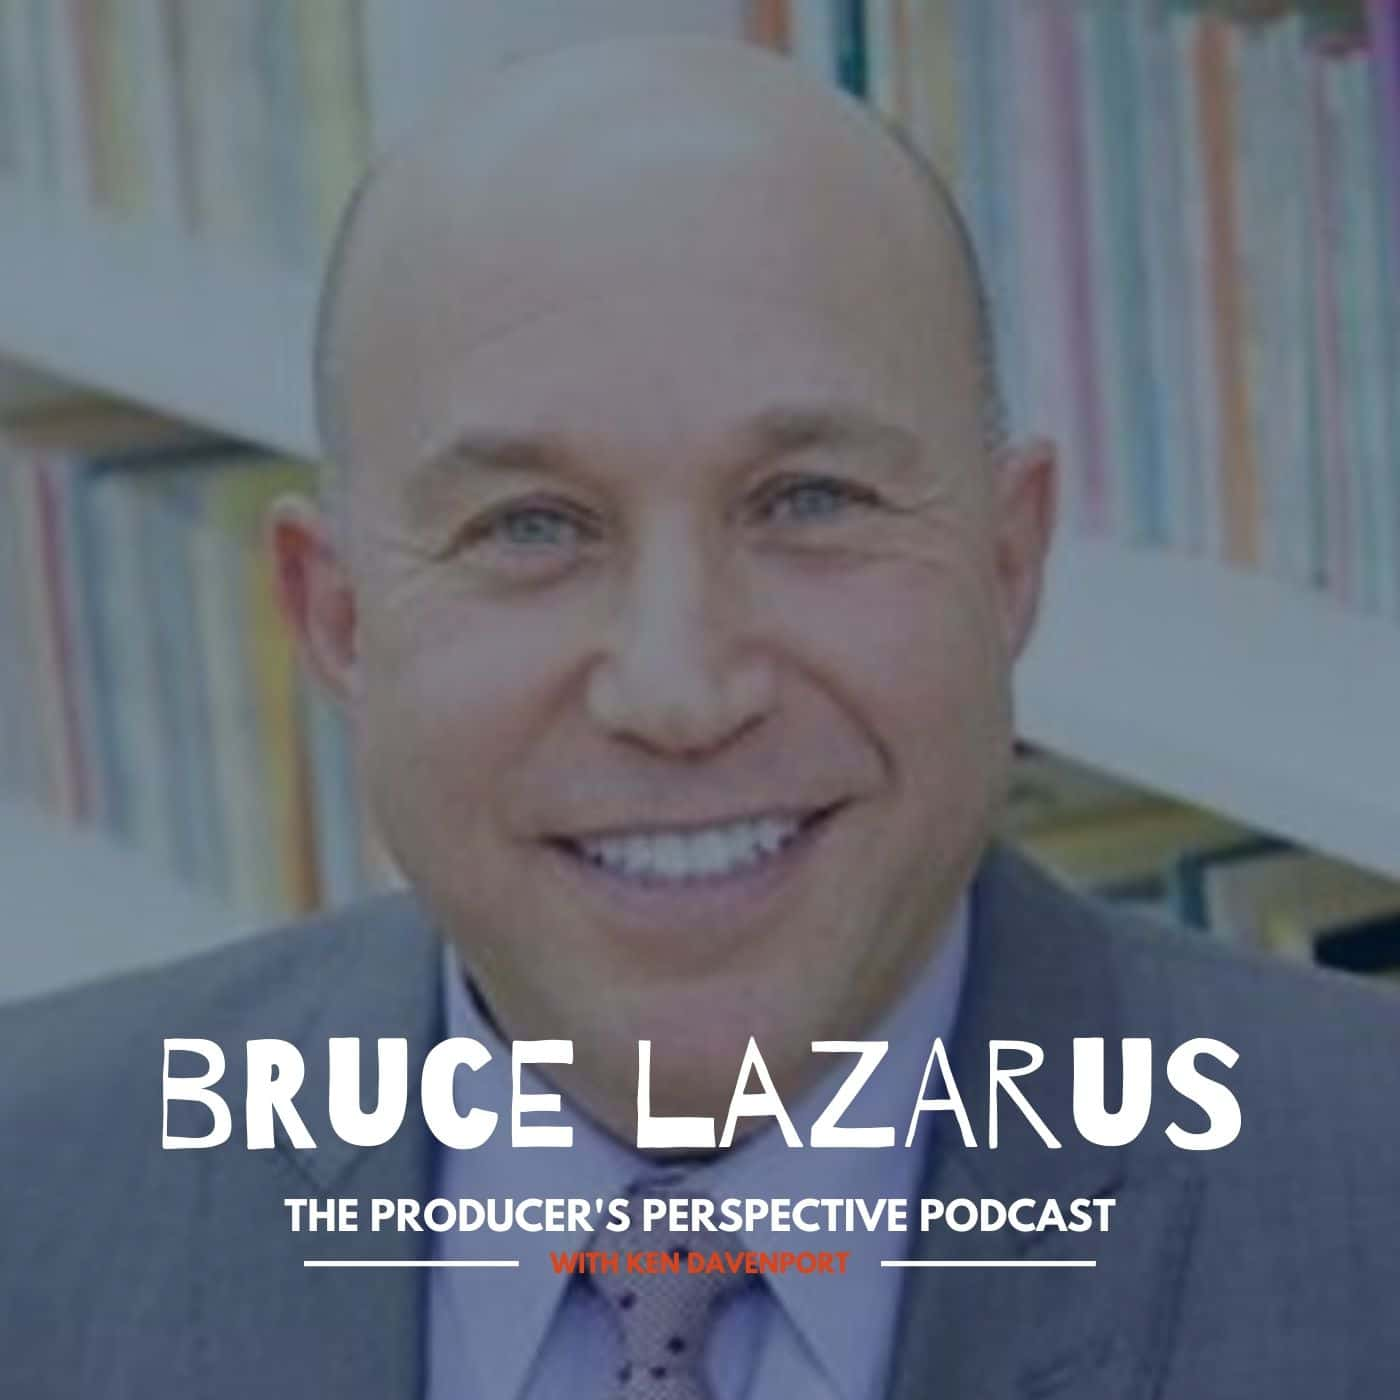 Ken Davenport's The Producer's Perspective Podcast Episode 67 - Bruce Lazarus